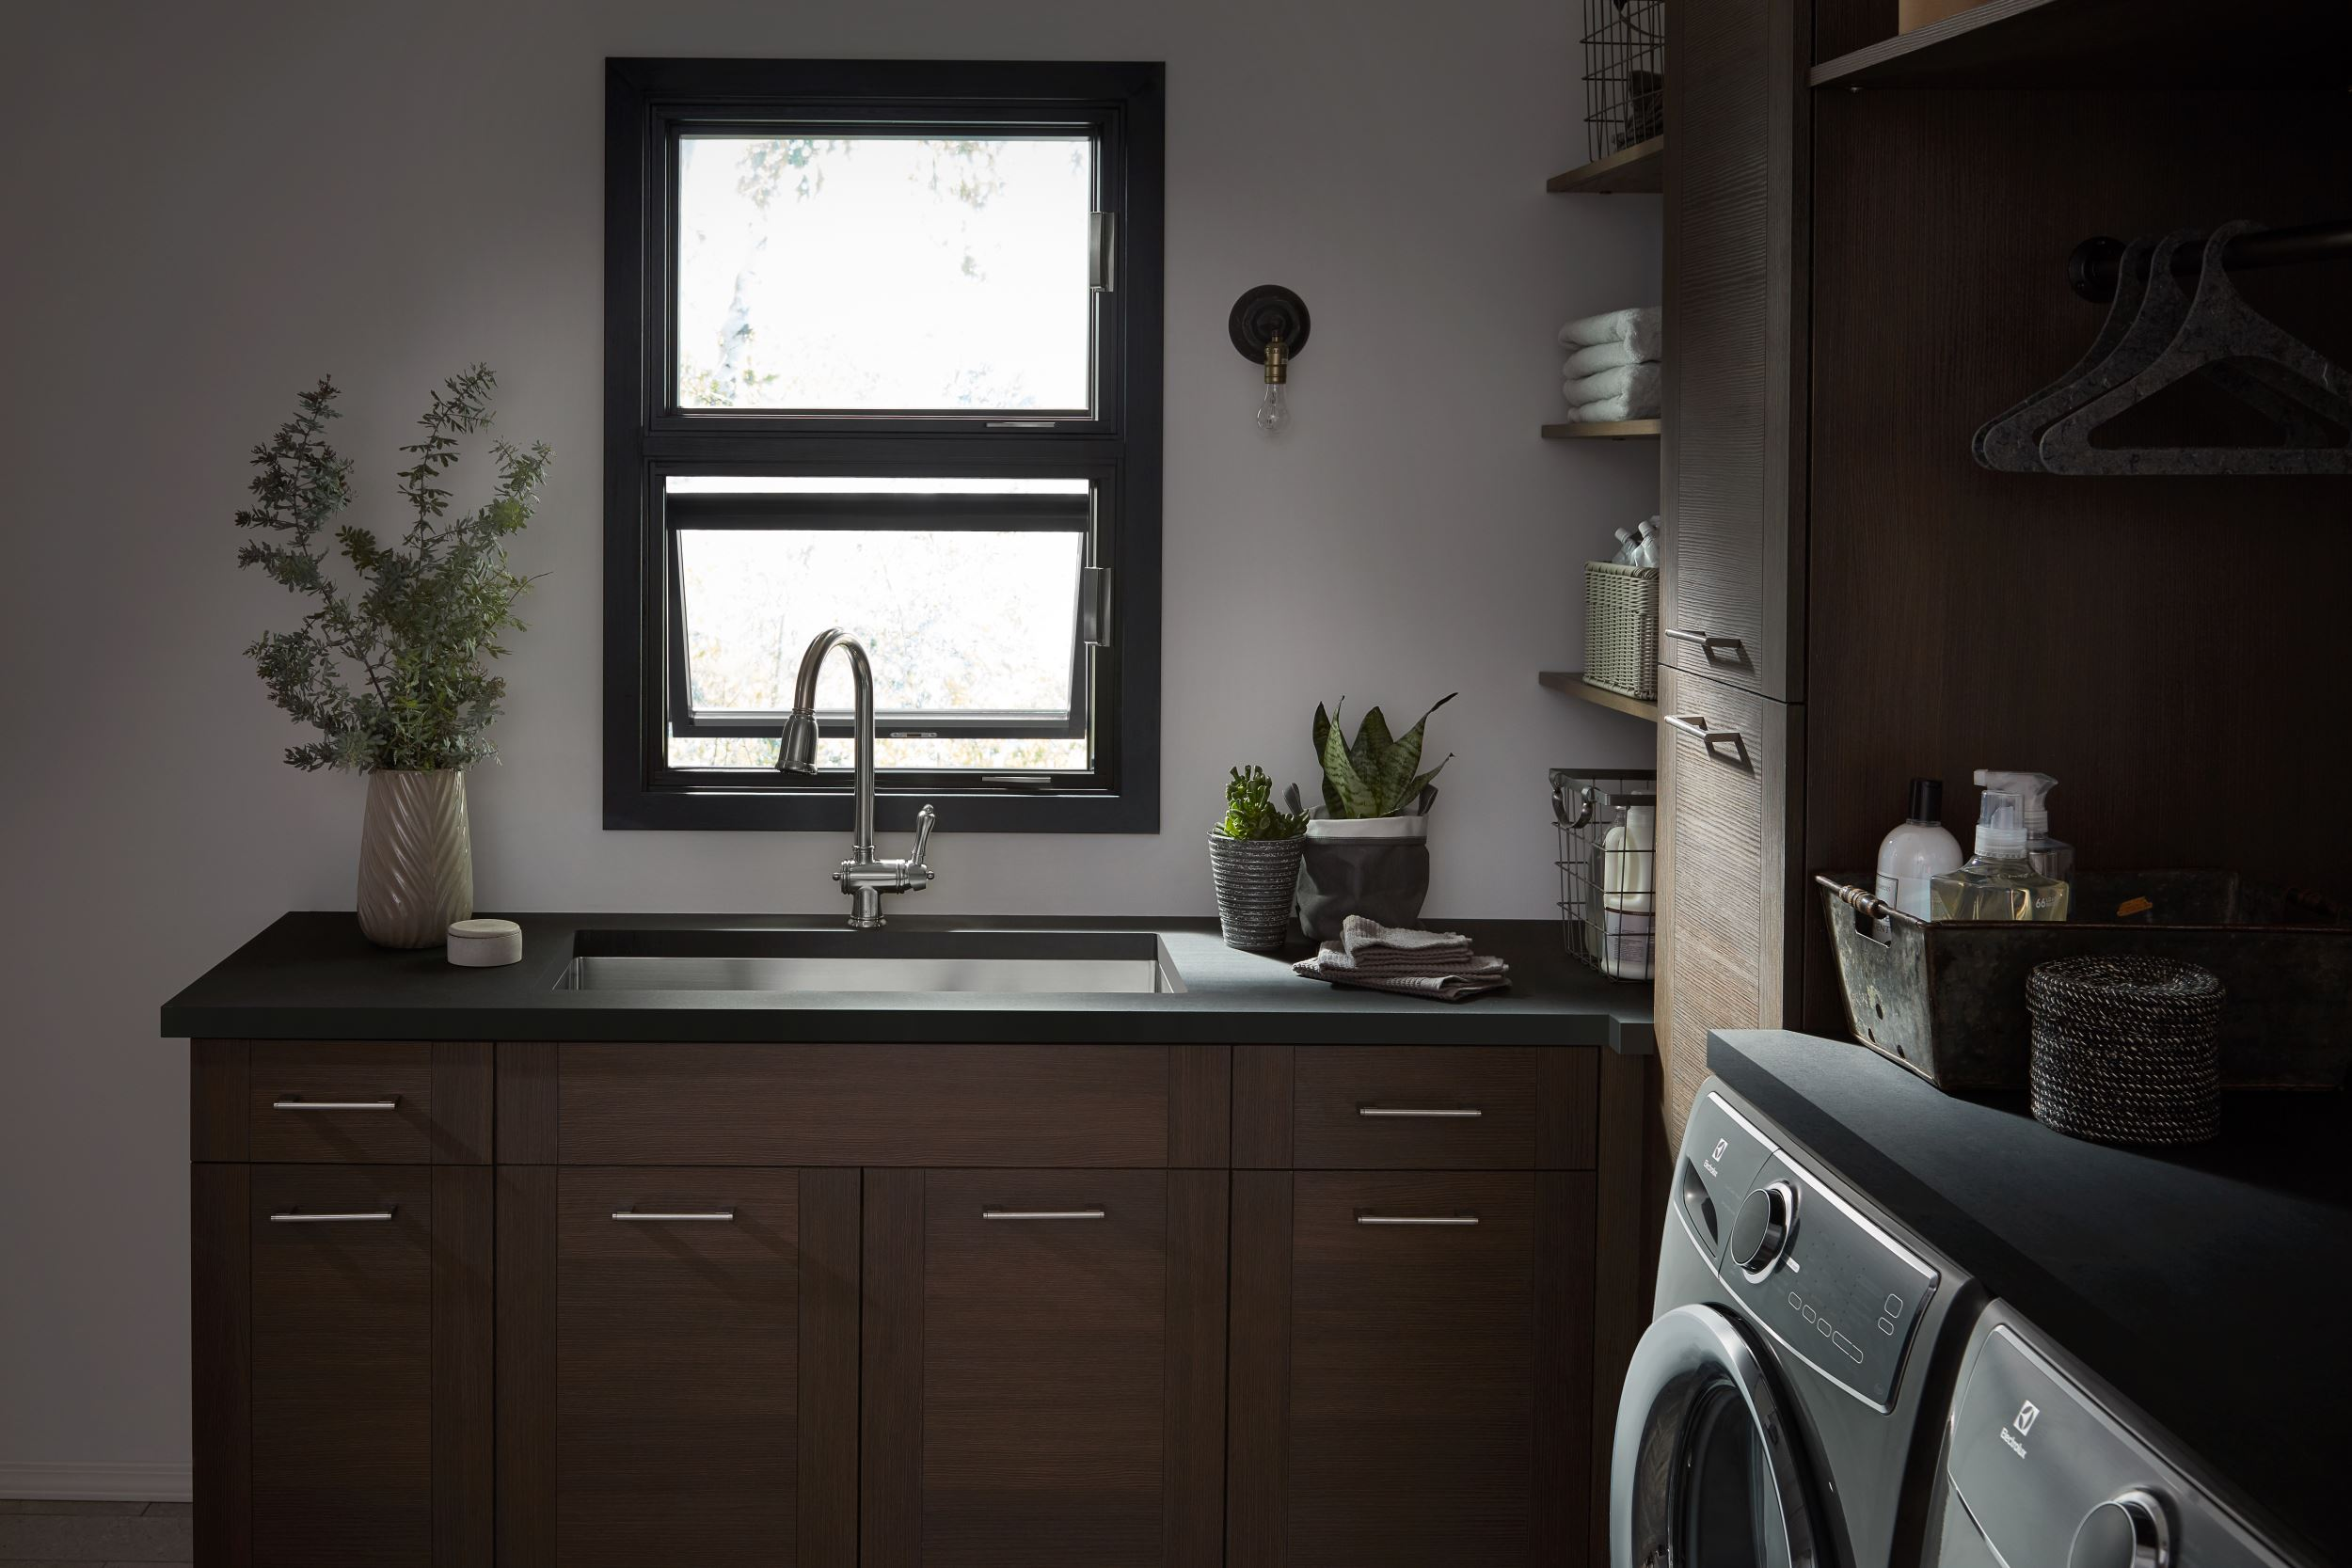 laundry-room-awning-window